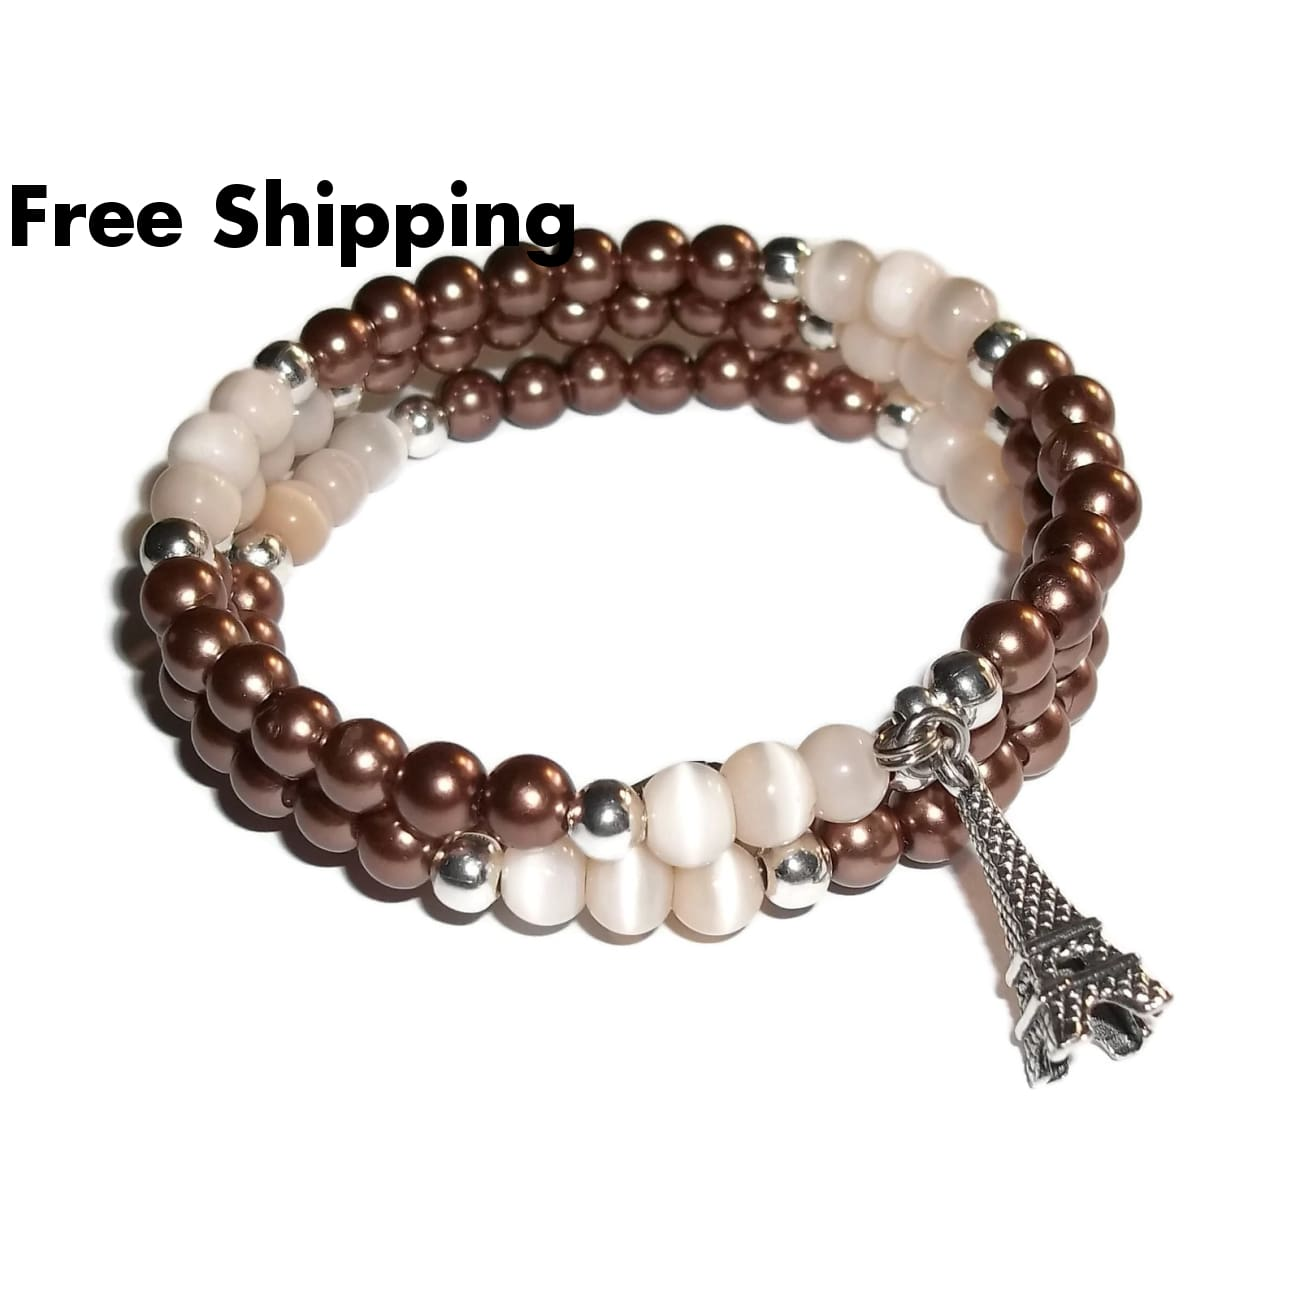 Eiffel Tower Chocolate Pearl & Cream Cats Eye Beaded Artisan Crafted Wrap Bracelet - Bracelets